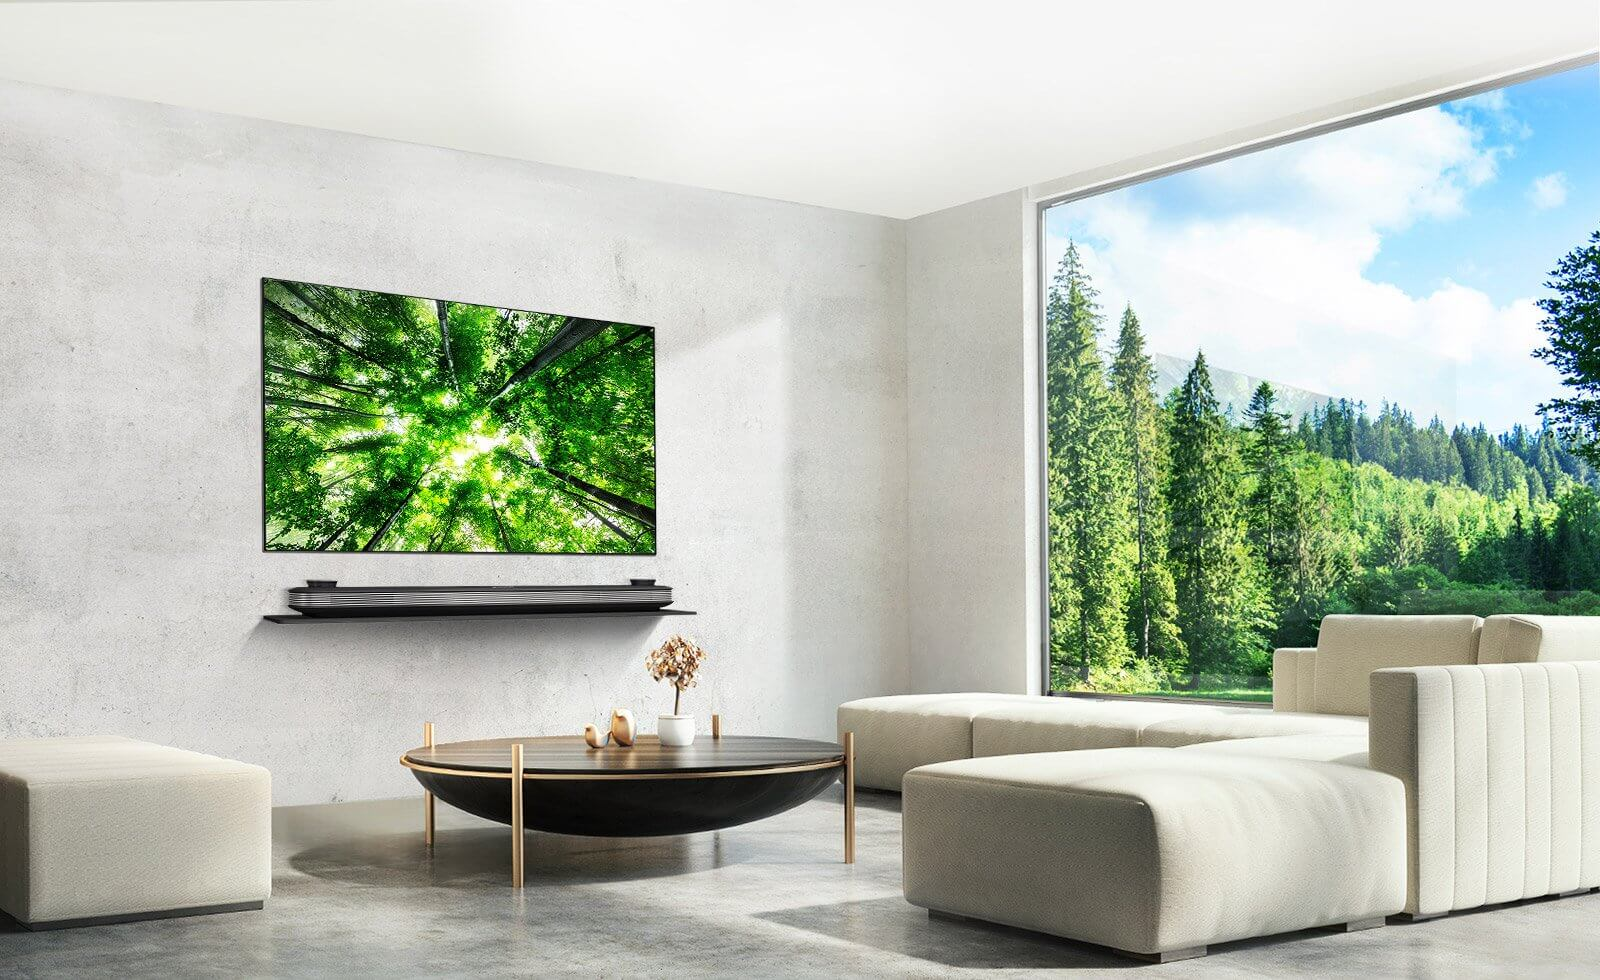 Телевизор LG OLED65W8 LG SIGNATURE webOS Smart TV LG AI TV 4K Cinema HDR, Dolby Atmos - фото 01_W8_A_Intro_desktop.jpg